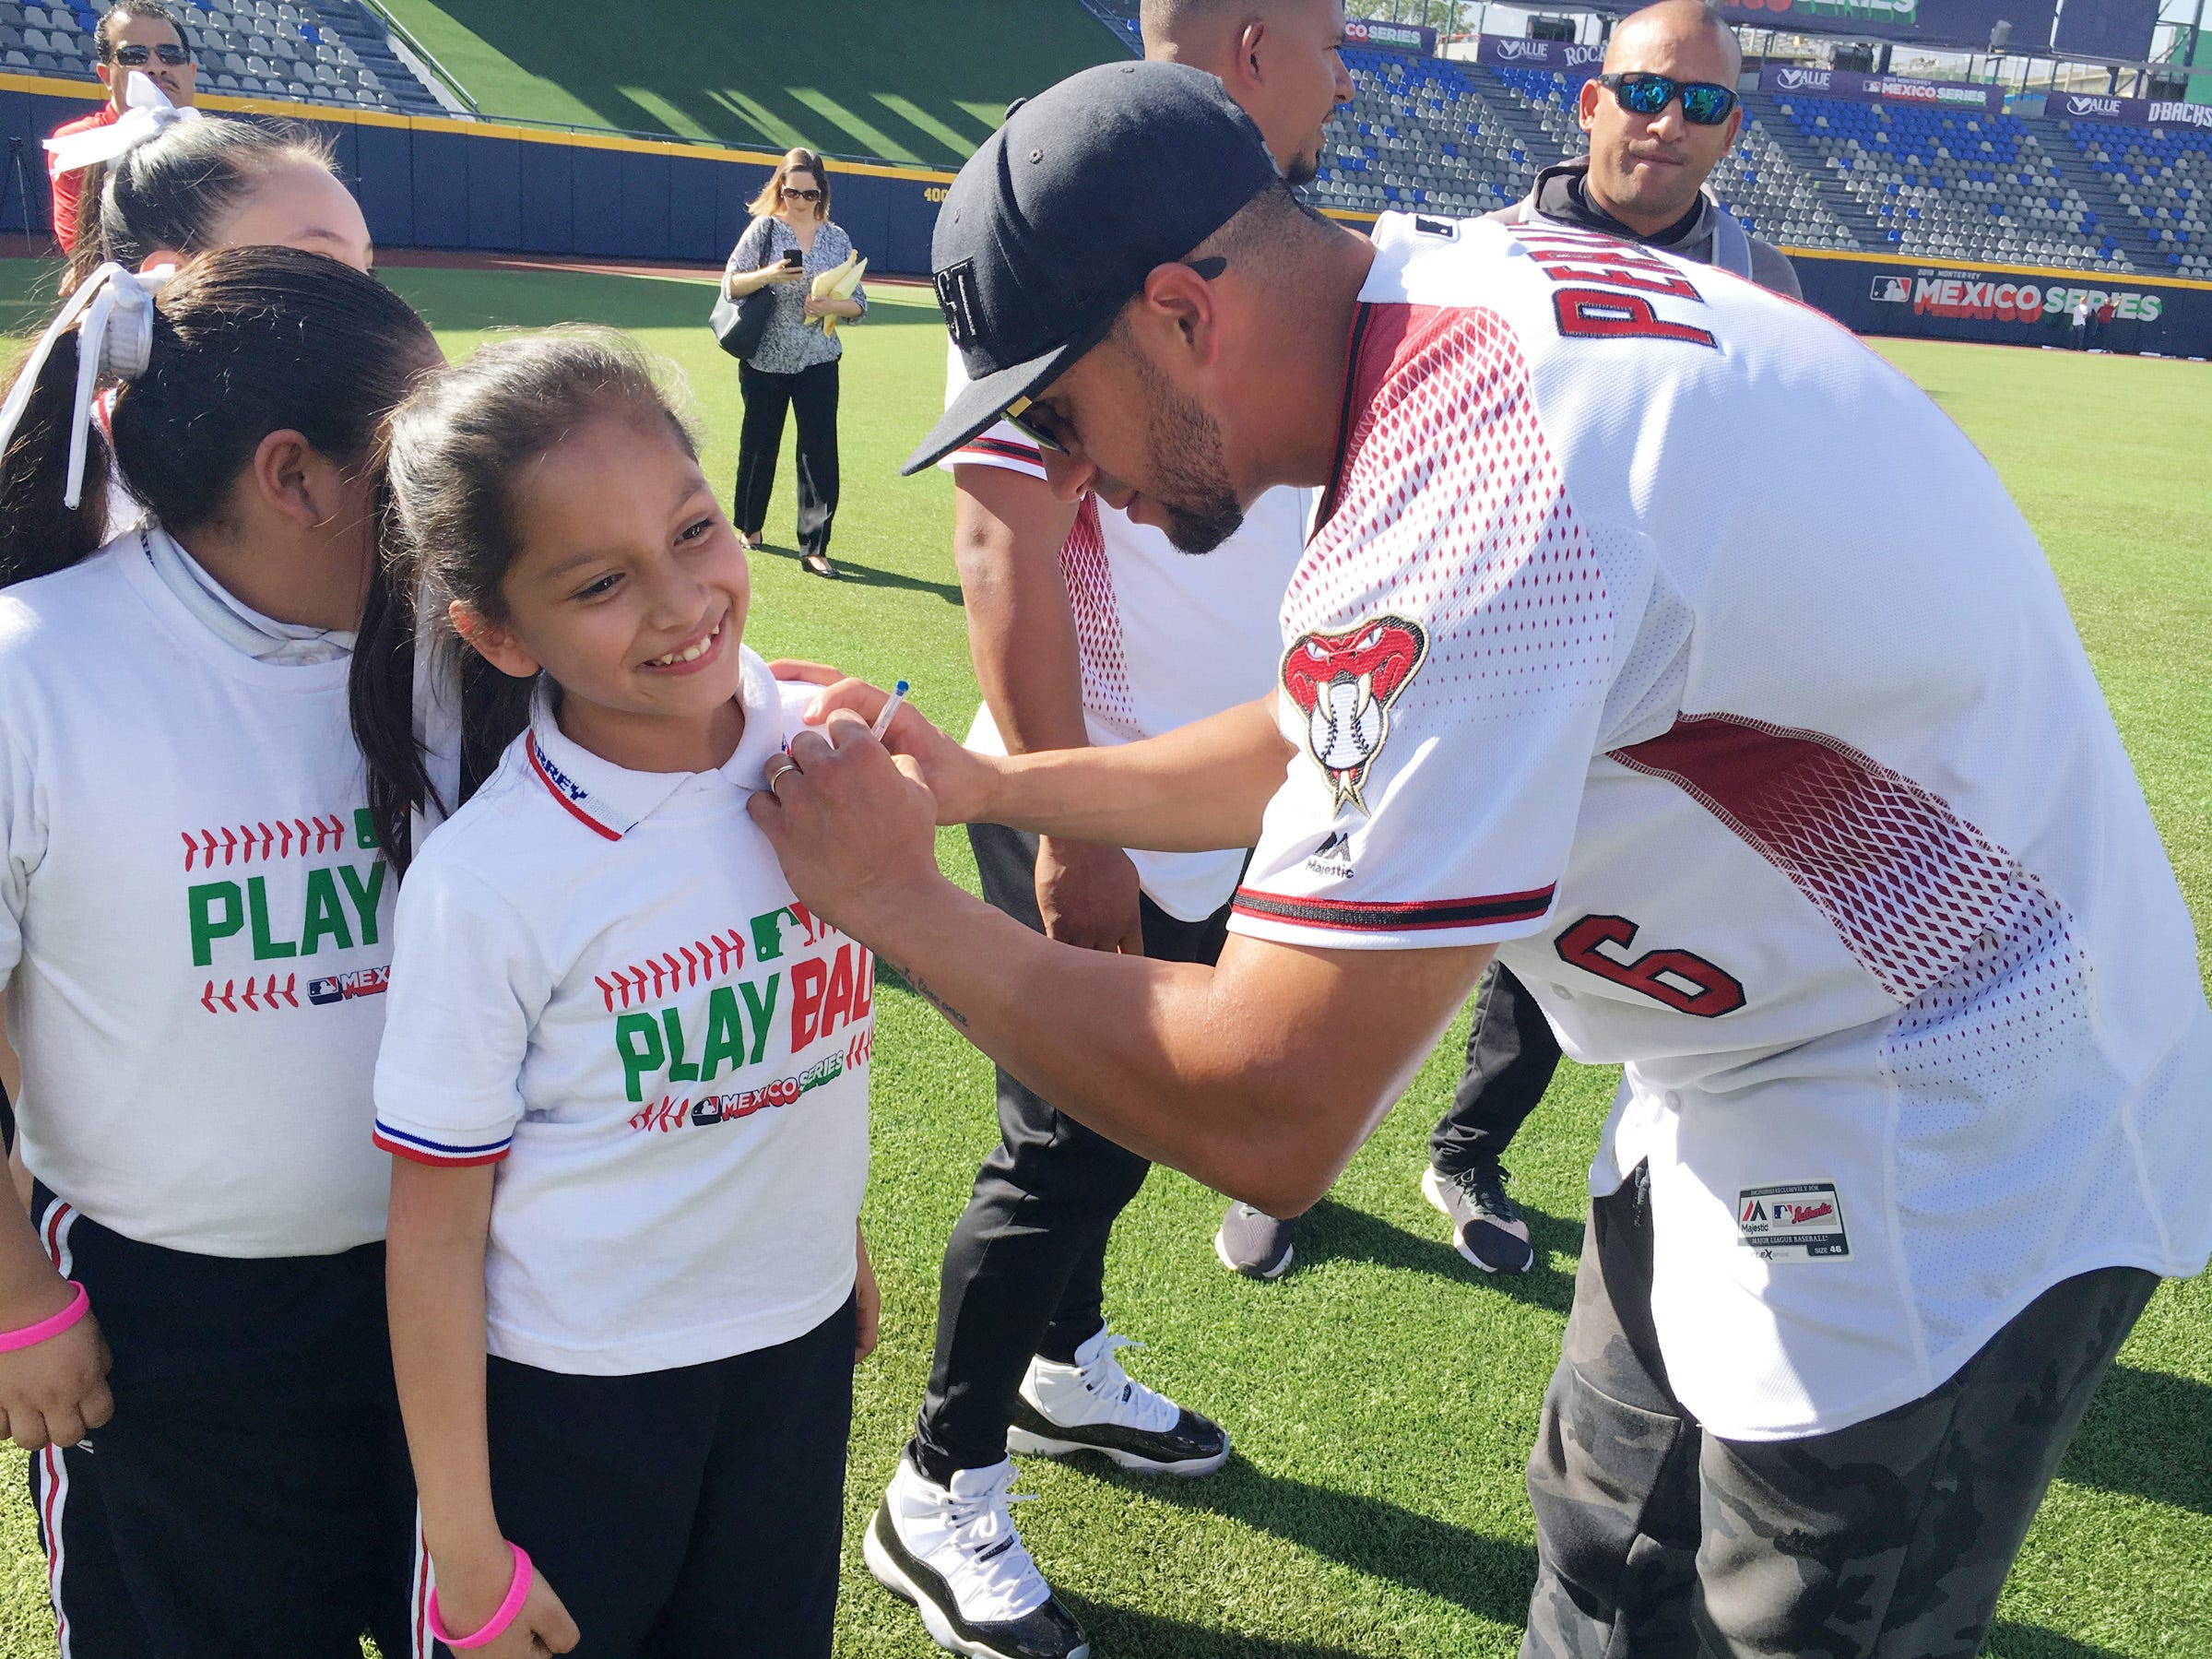 Arizona Diamondbacks outfielder David Peralta autographs the T-shirt of a girl inside the baseball stadium in Monterrey, Mexico. The Arizona Diamondbacks played two spring training games in Monterrey against the Colorado Rockies in March, as part of push by Major League Baseball to expand its global fan base.